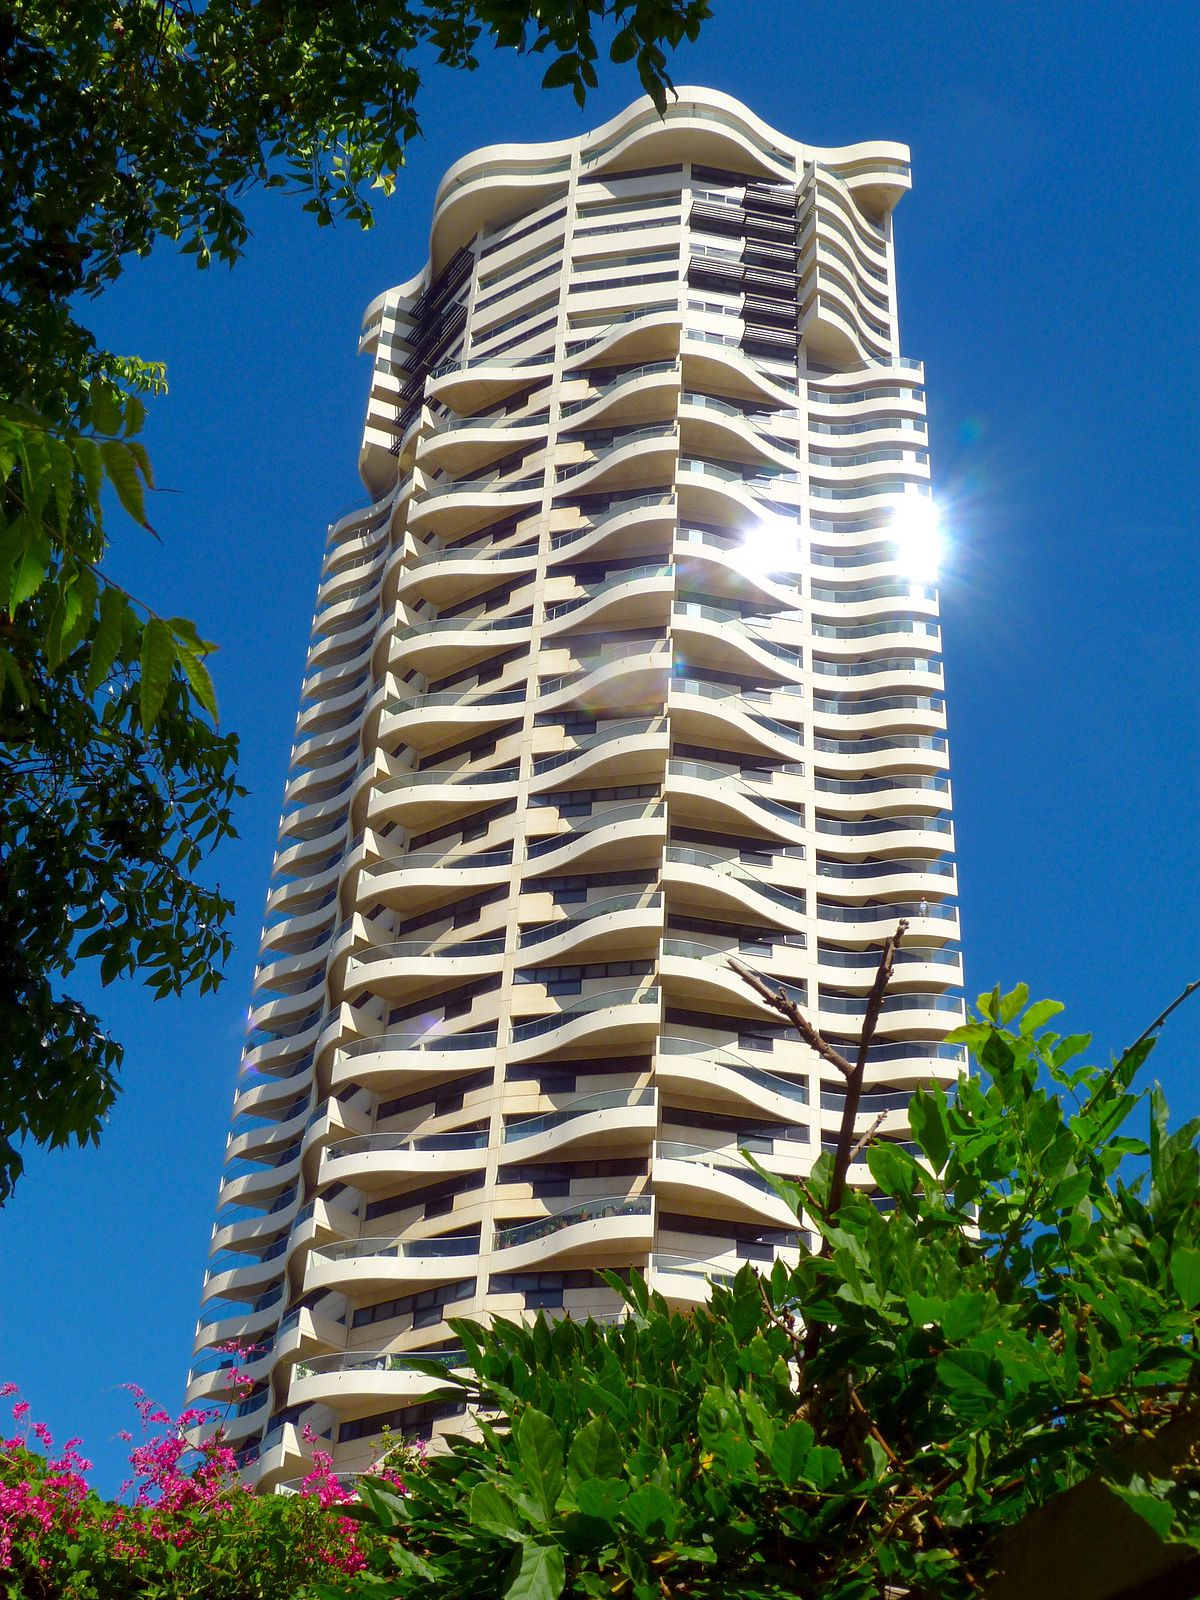 44fb96ccf7f10 Horizon Apartments - Wikipedia